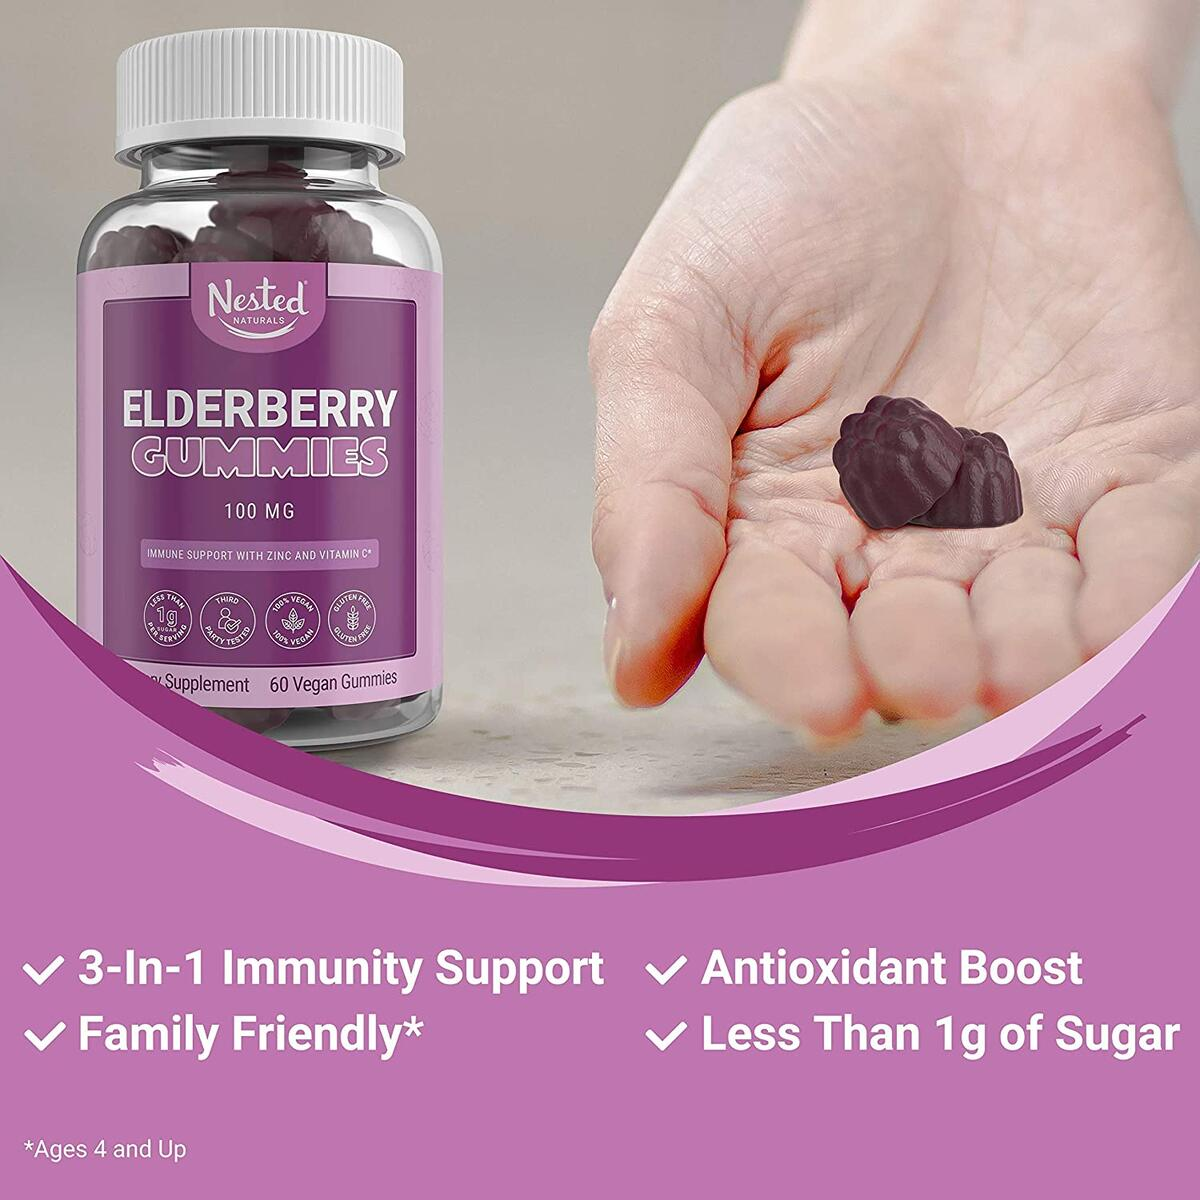 Nested Naturals Elderberry Gummies | Immune System & Antioxidant Support Supplement for Adults & Kids